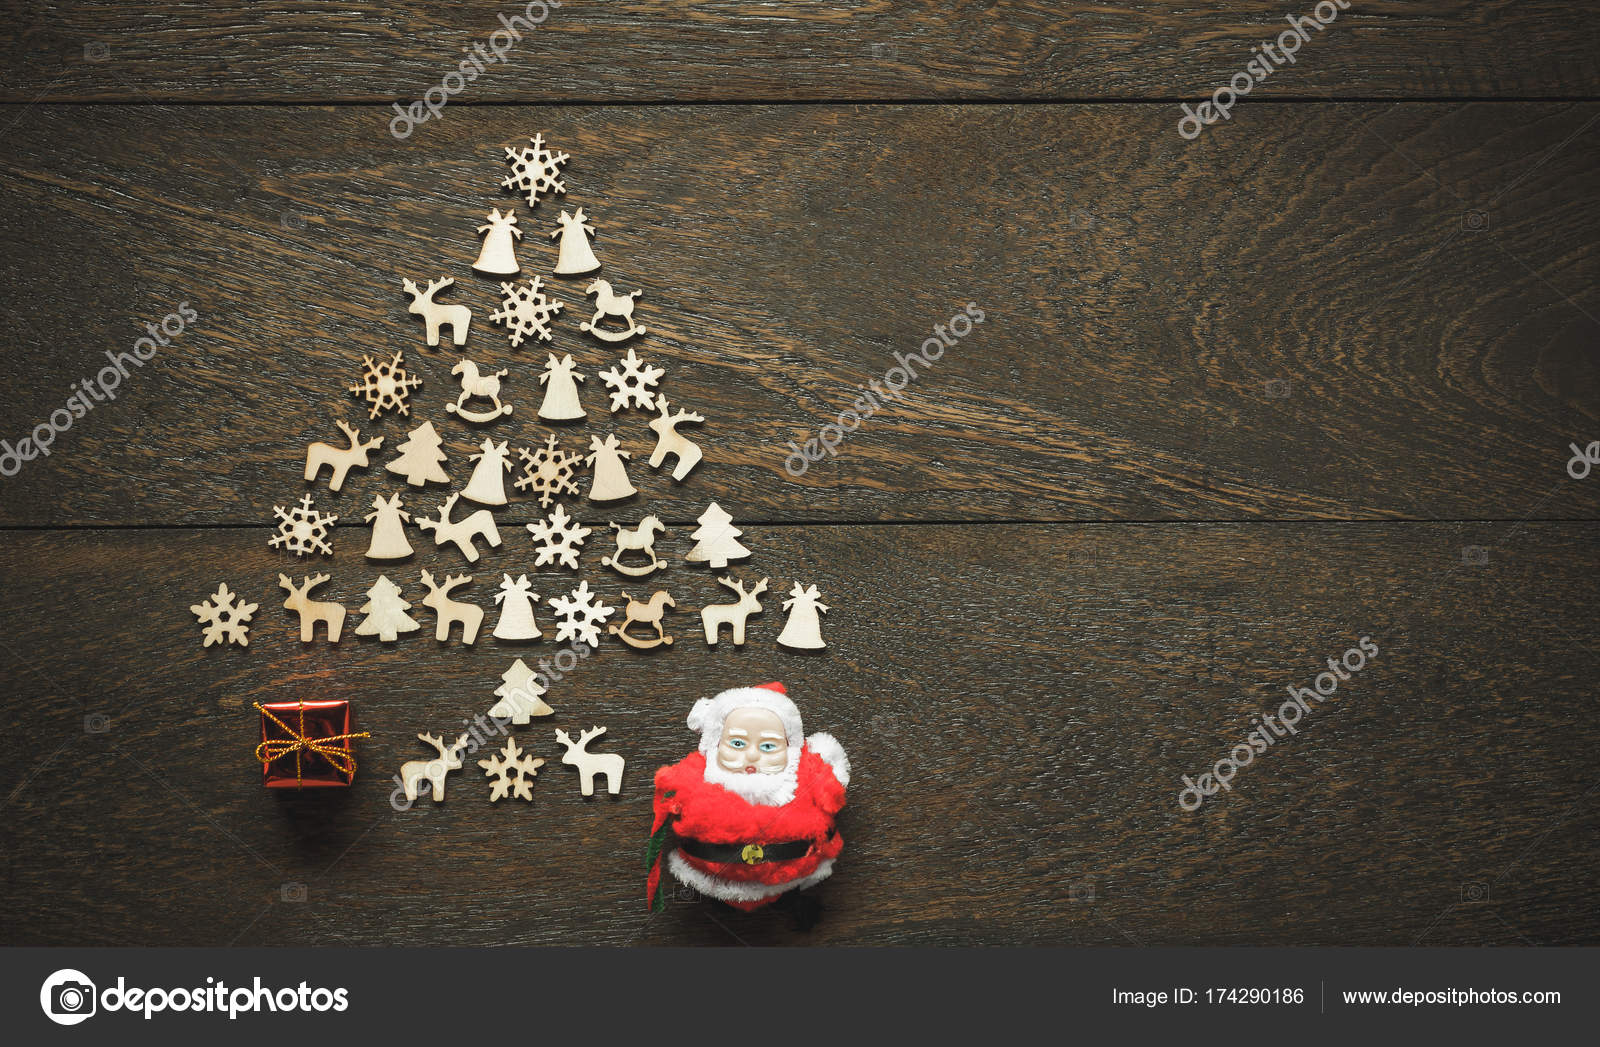 flat lay aerial image of arrangement composition christmas tree by handmade with decorations ornamentsmany objects on vintage grunge woodenessential